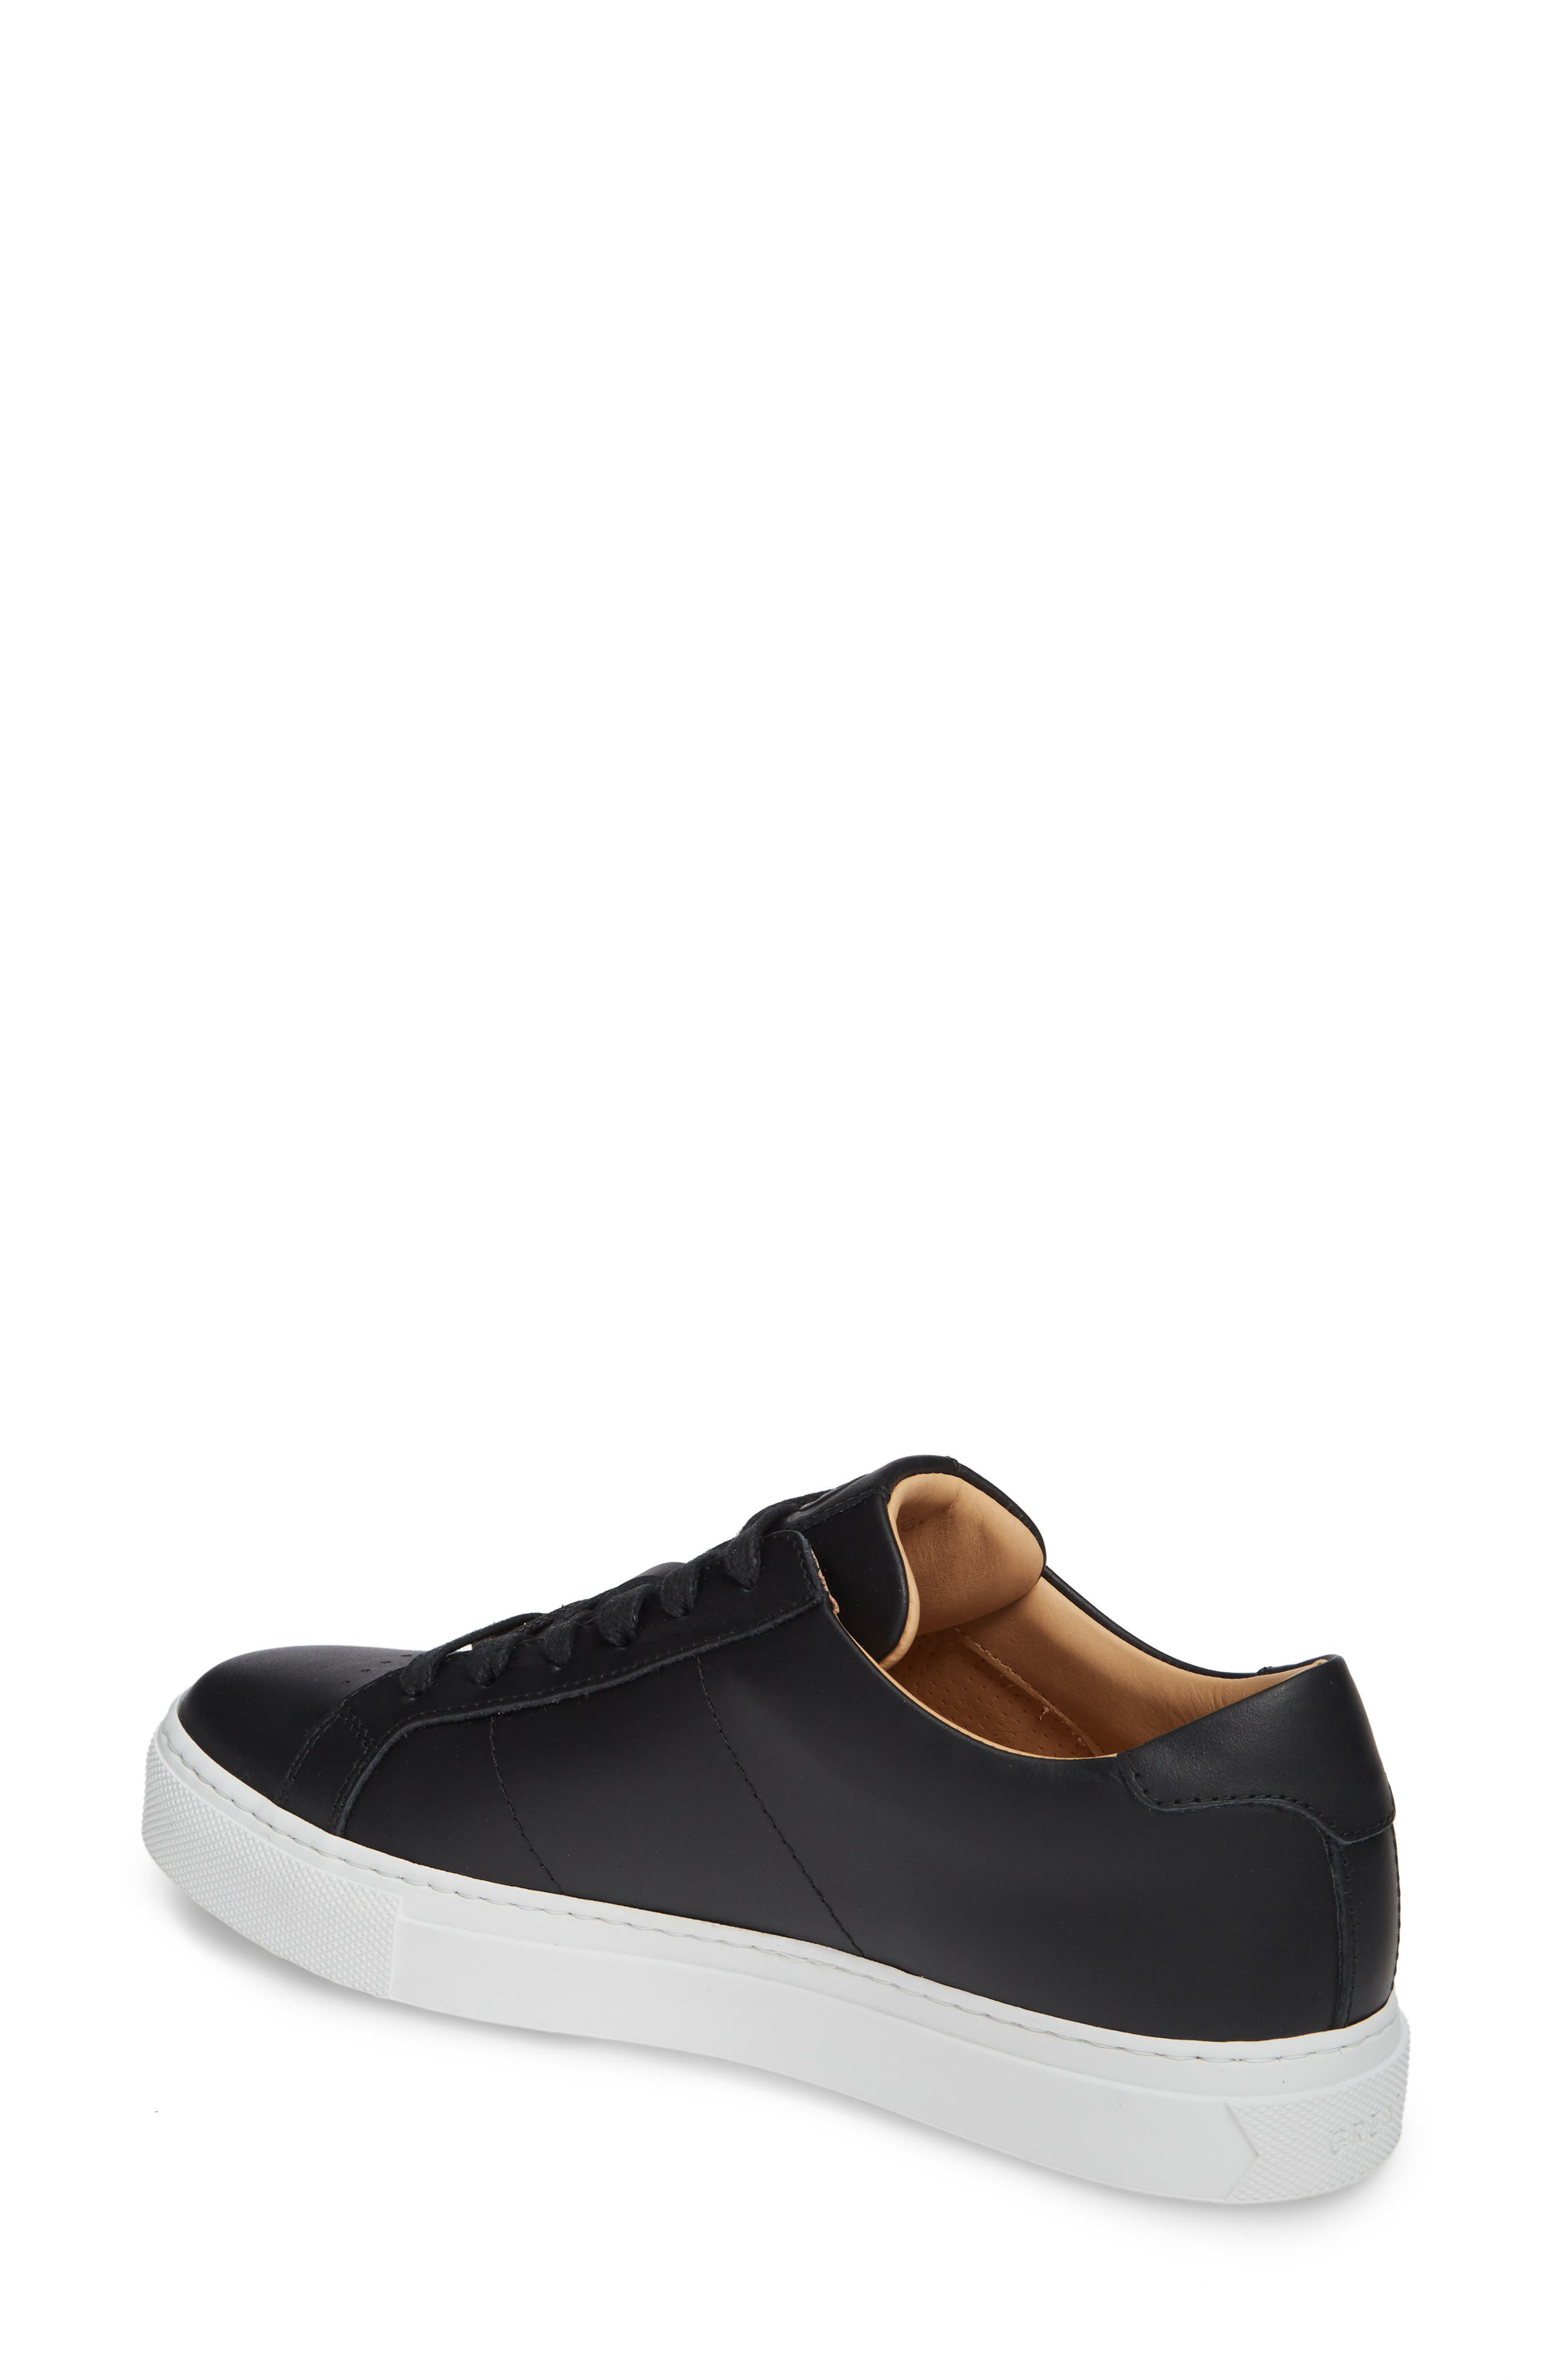 GREATS, Royale Low Top Sneaker, Alternate thumbnail 2, color, BLACK LEATHER